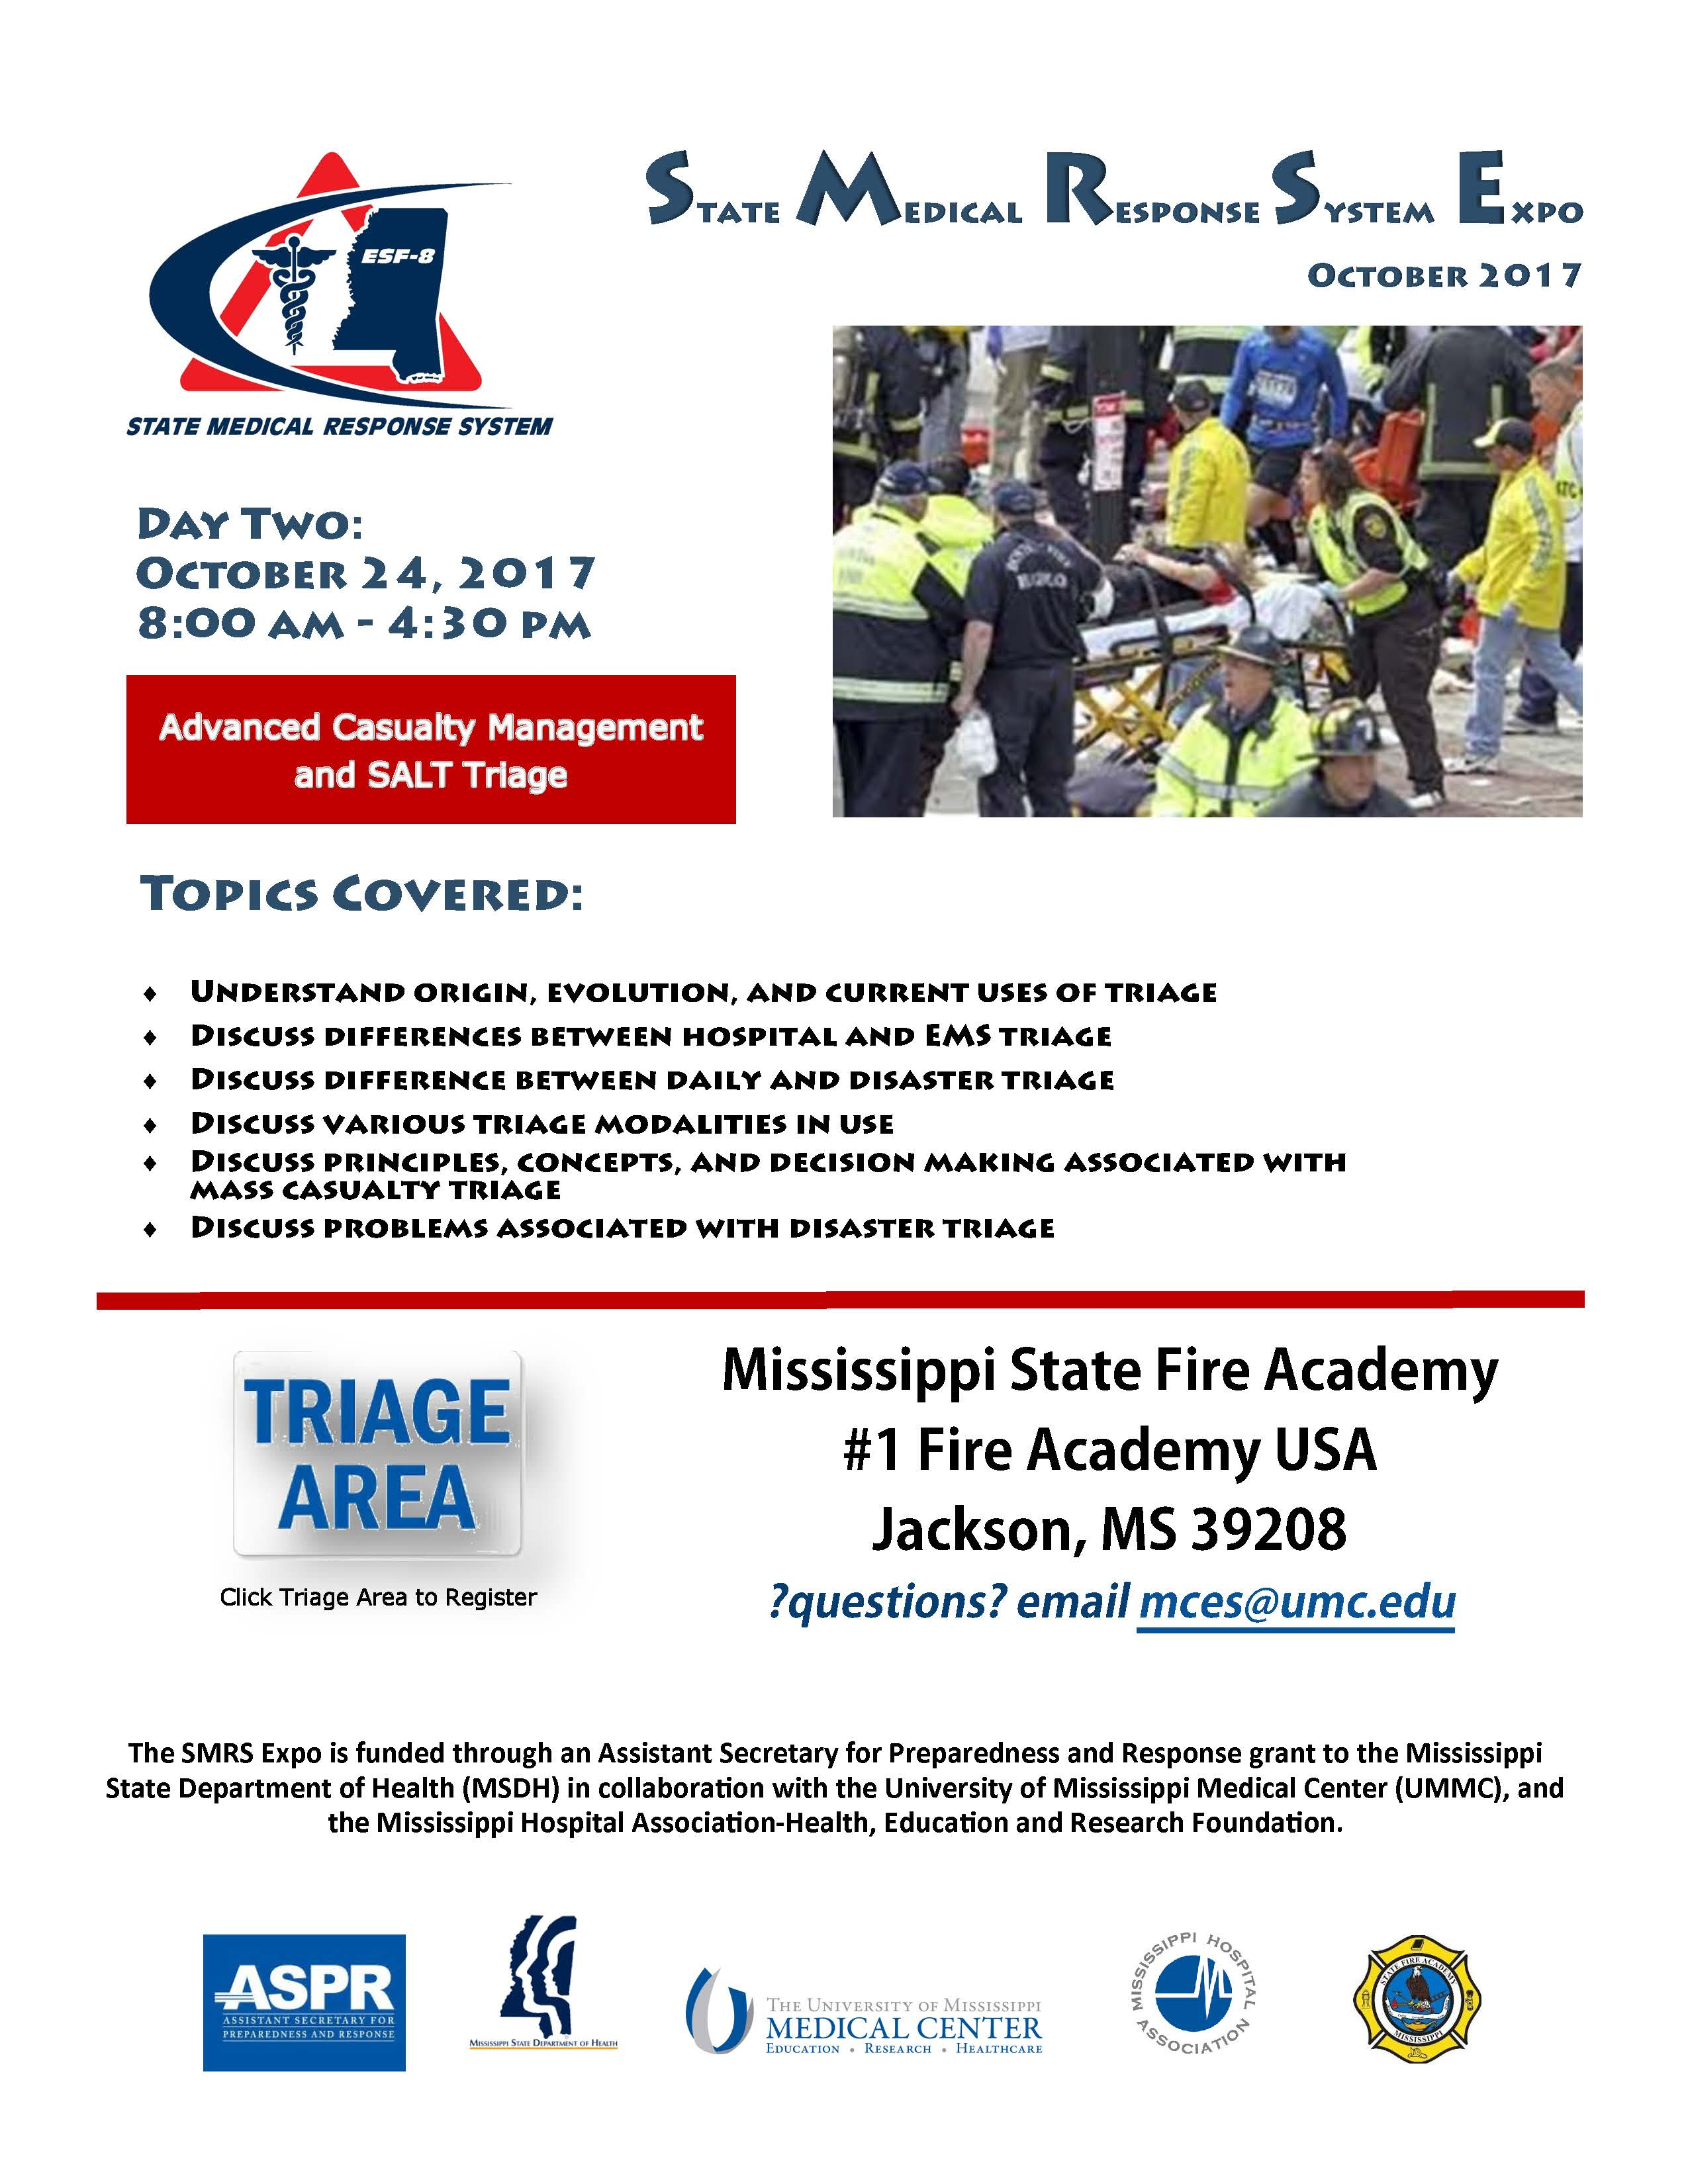 final-day-2-mass-casualty-smrs-expo-oct.-2017-msfa-flyer.jpg